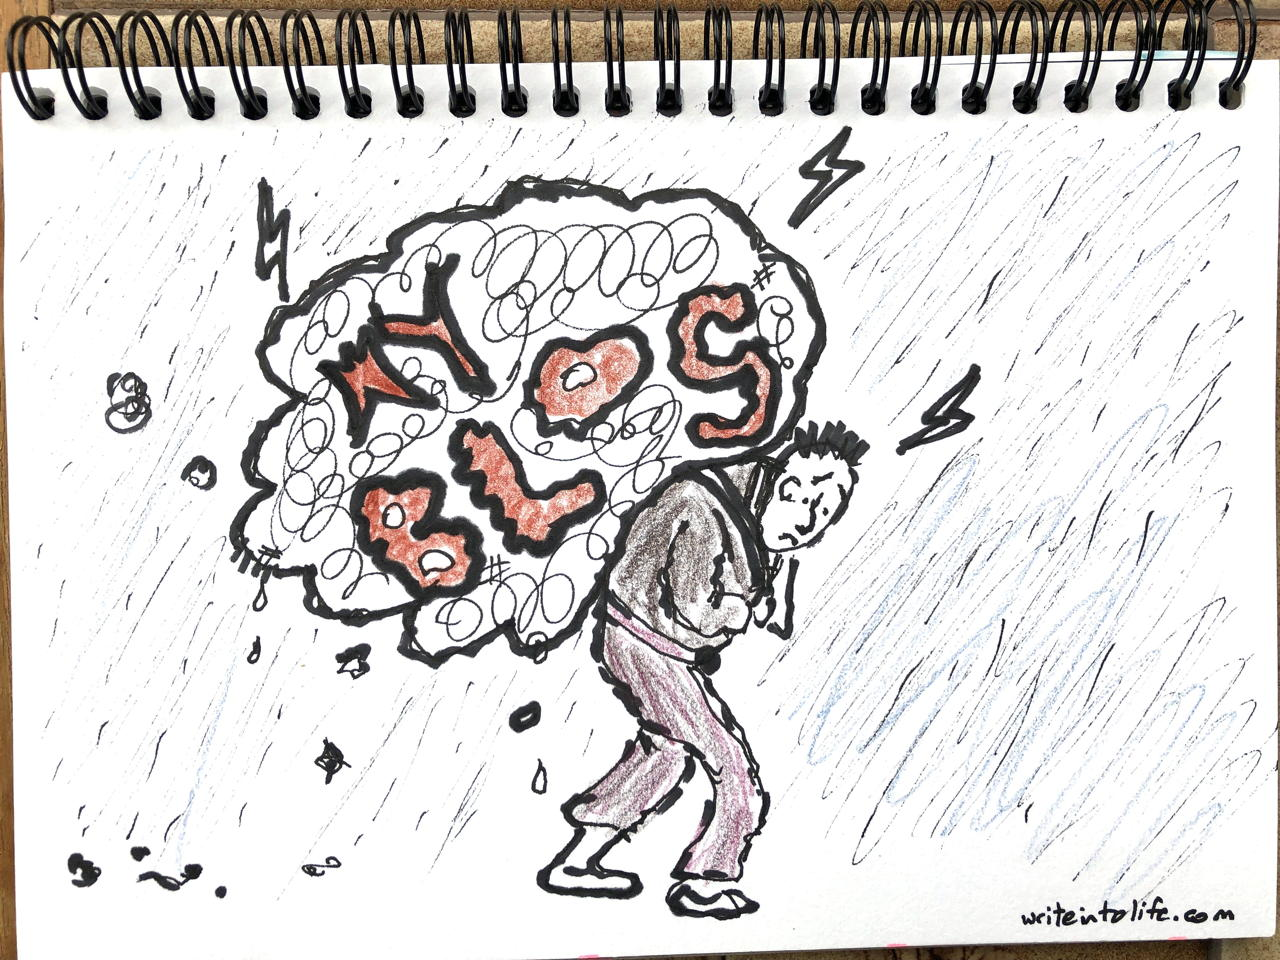 drawing of a sad man trudging through rain carrying a huge blog on his back